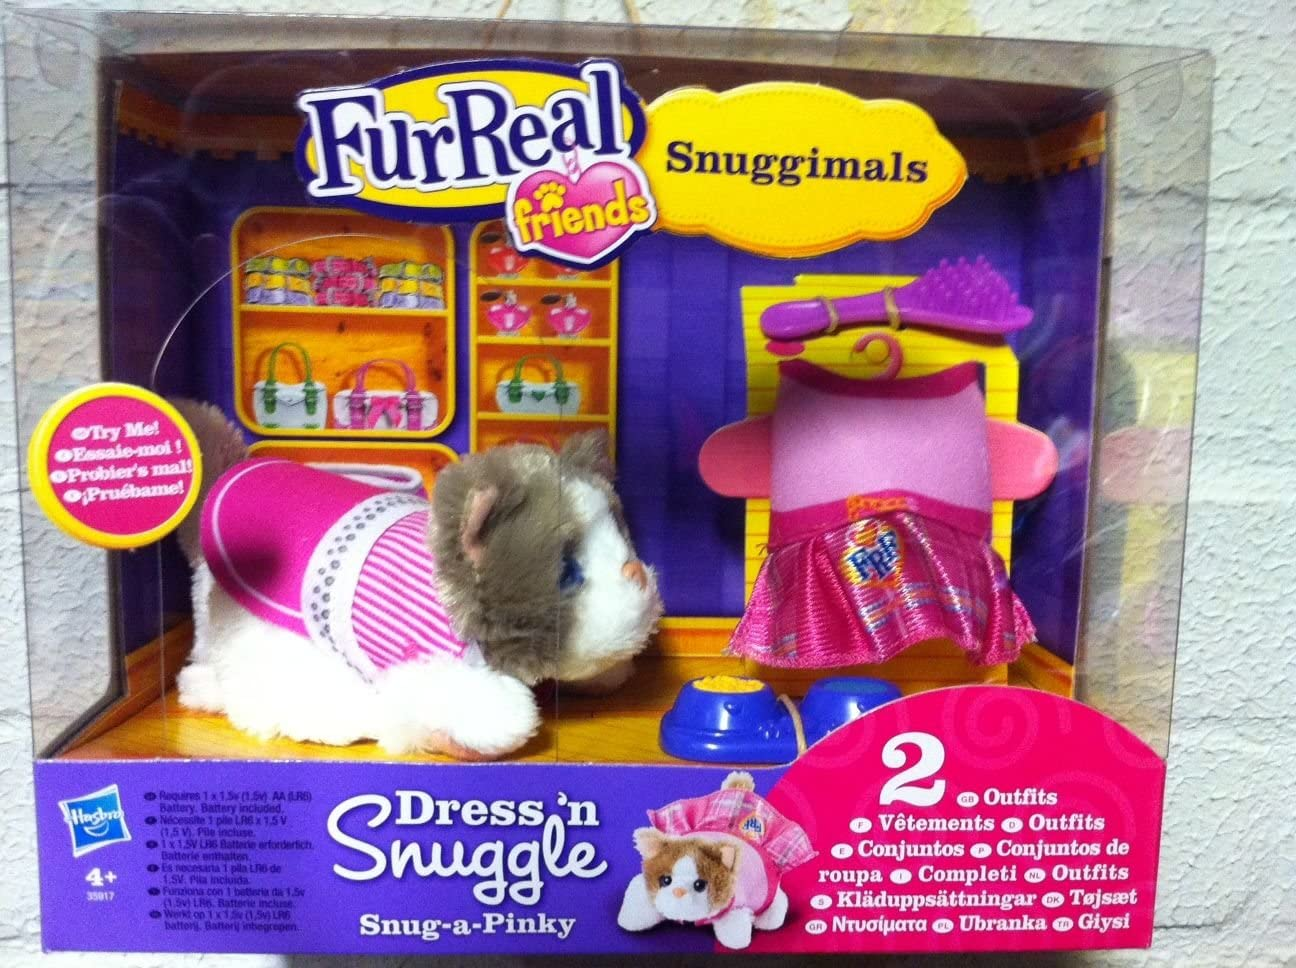 Amazon Com Fur Real Friends Snuggimals Dress N Snuggle With Lilac Paint Kitten Snug A Pinky Toys Games